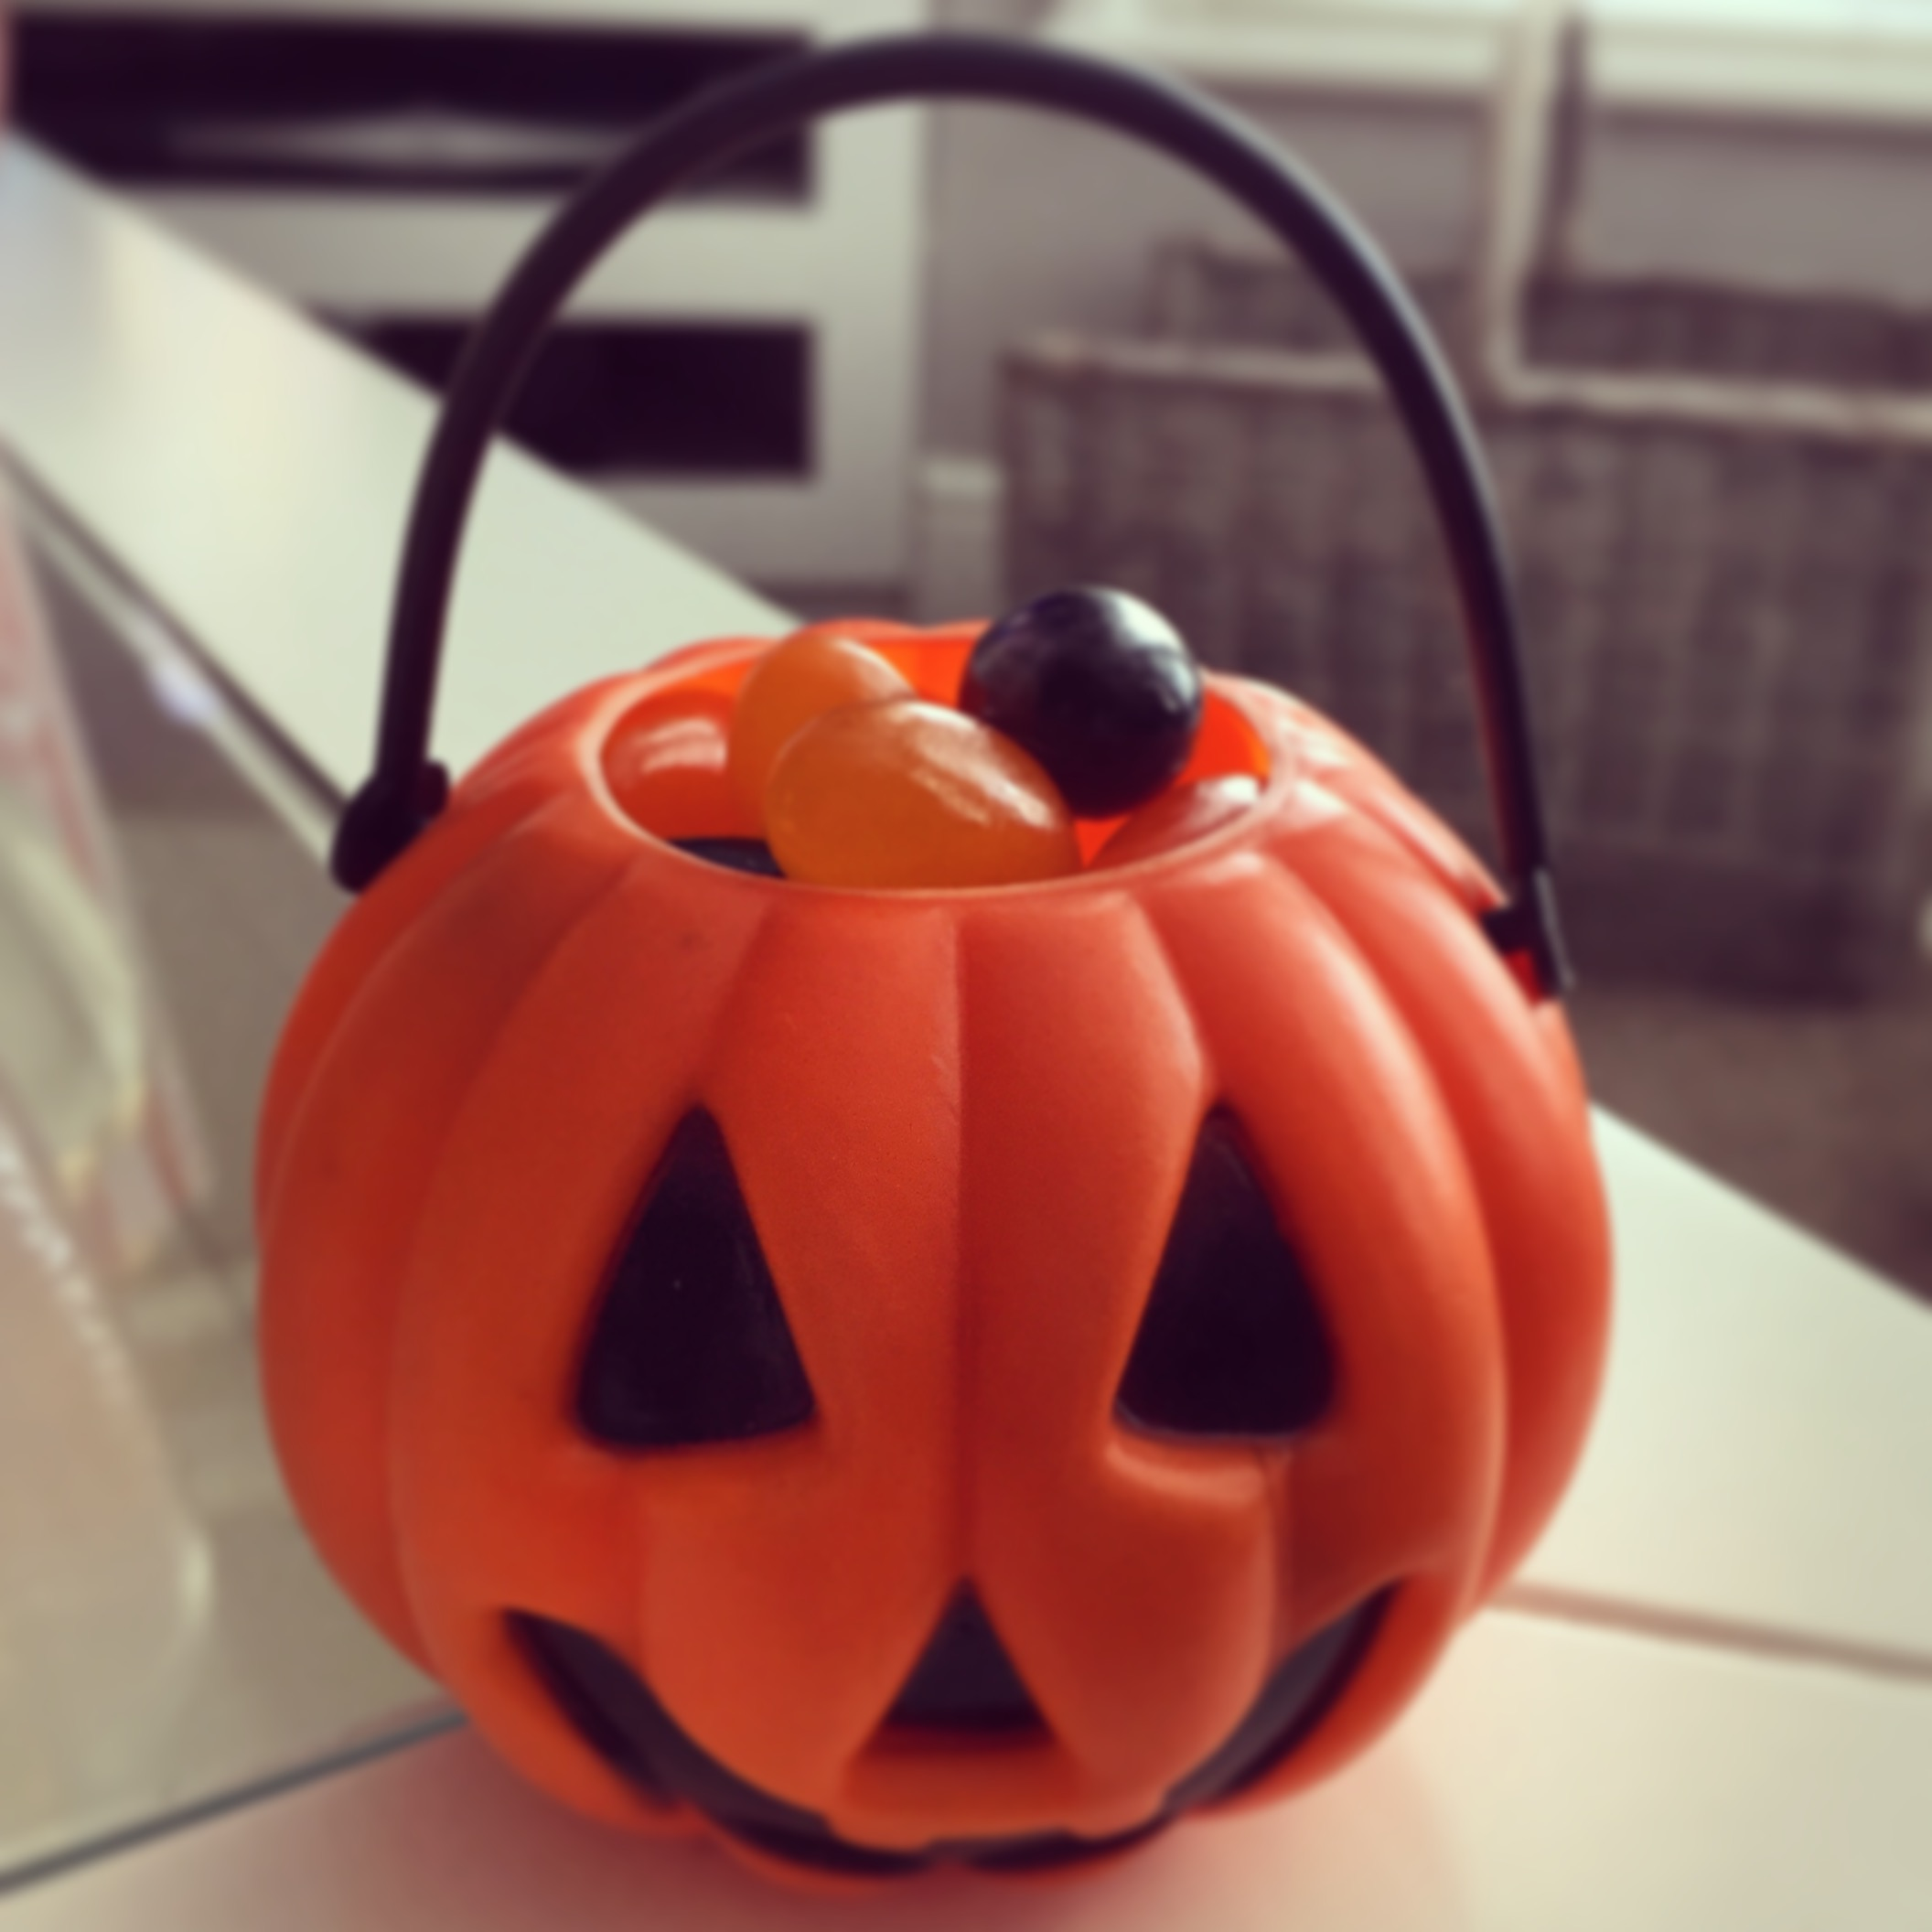 Give your guests individual mini pumpkins filled with black and orange jelly beans.